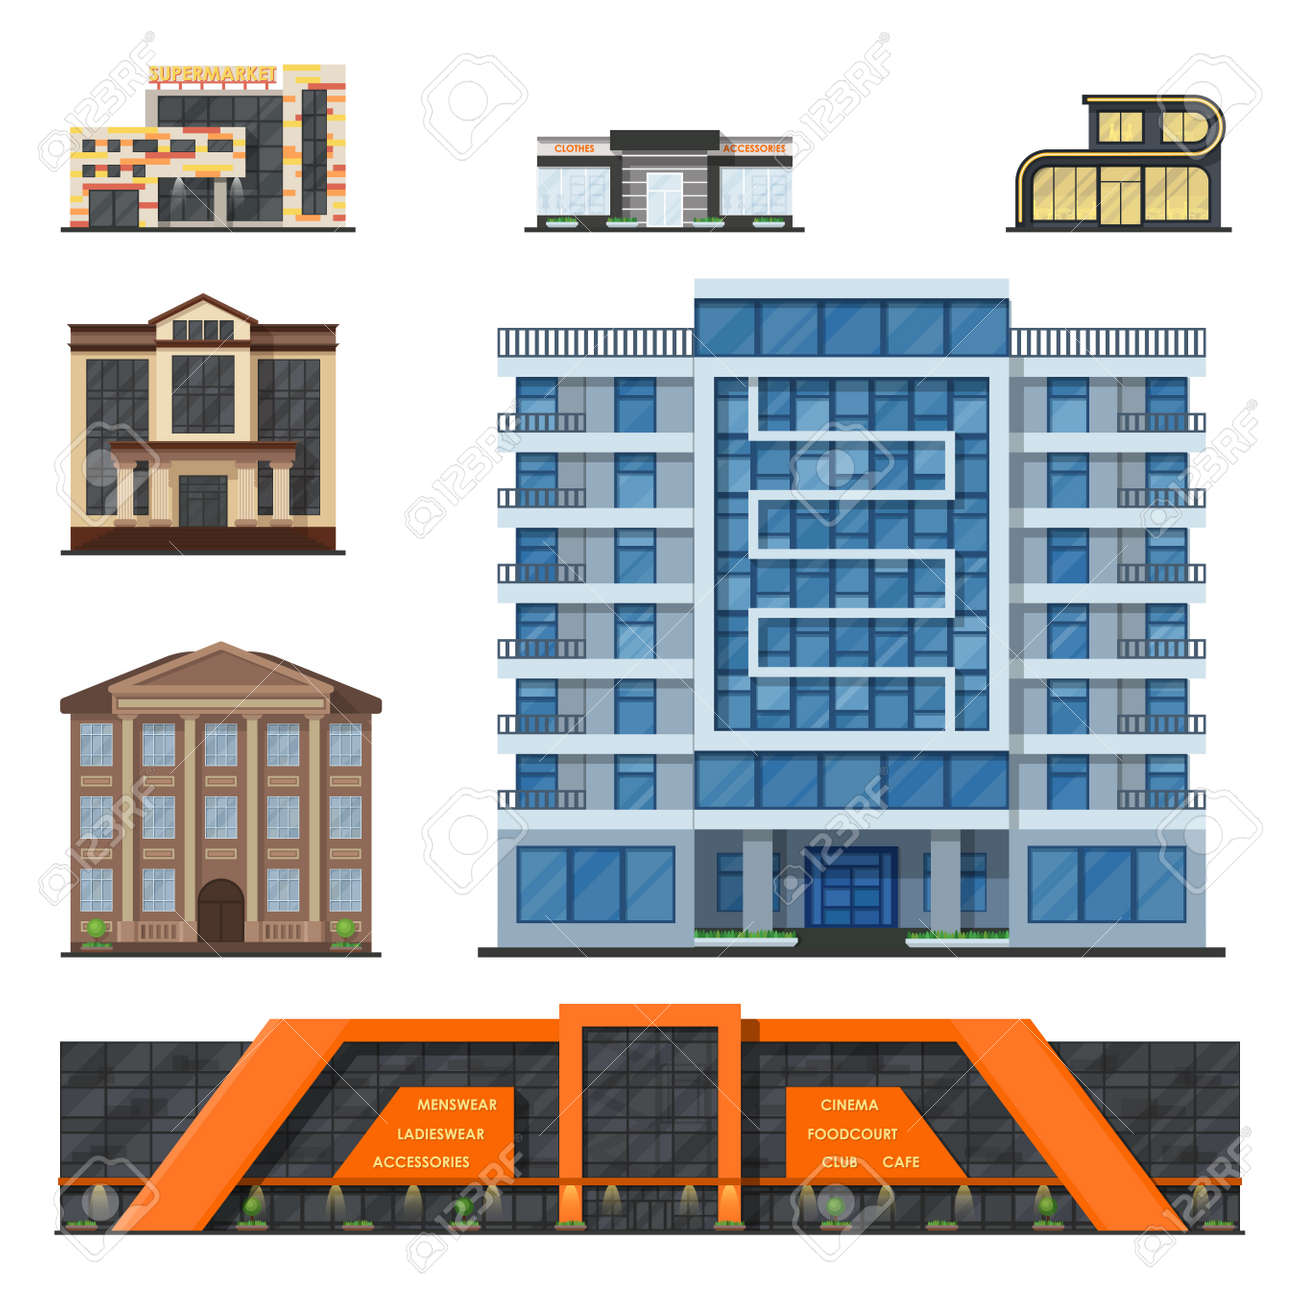 modern office architecture. City Buildings Modern Tower Office Architecture House Business Apartment Home Facade Vector Illustration. Cityscape C